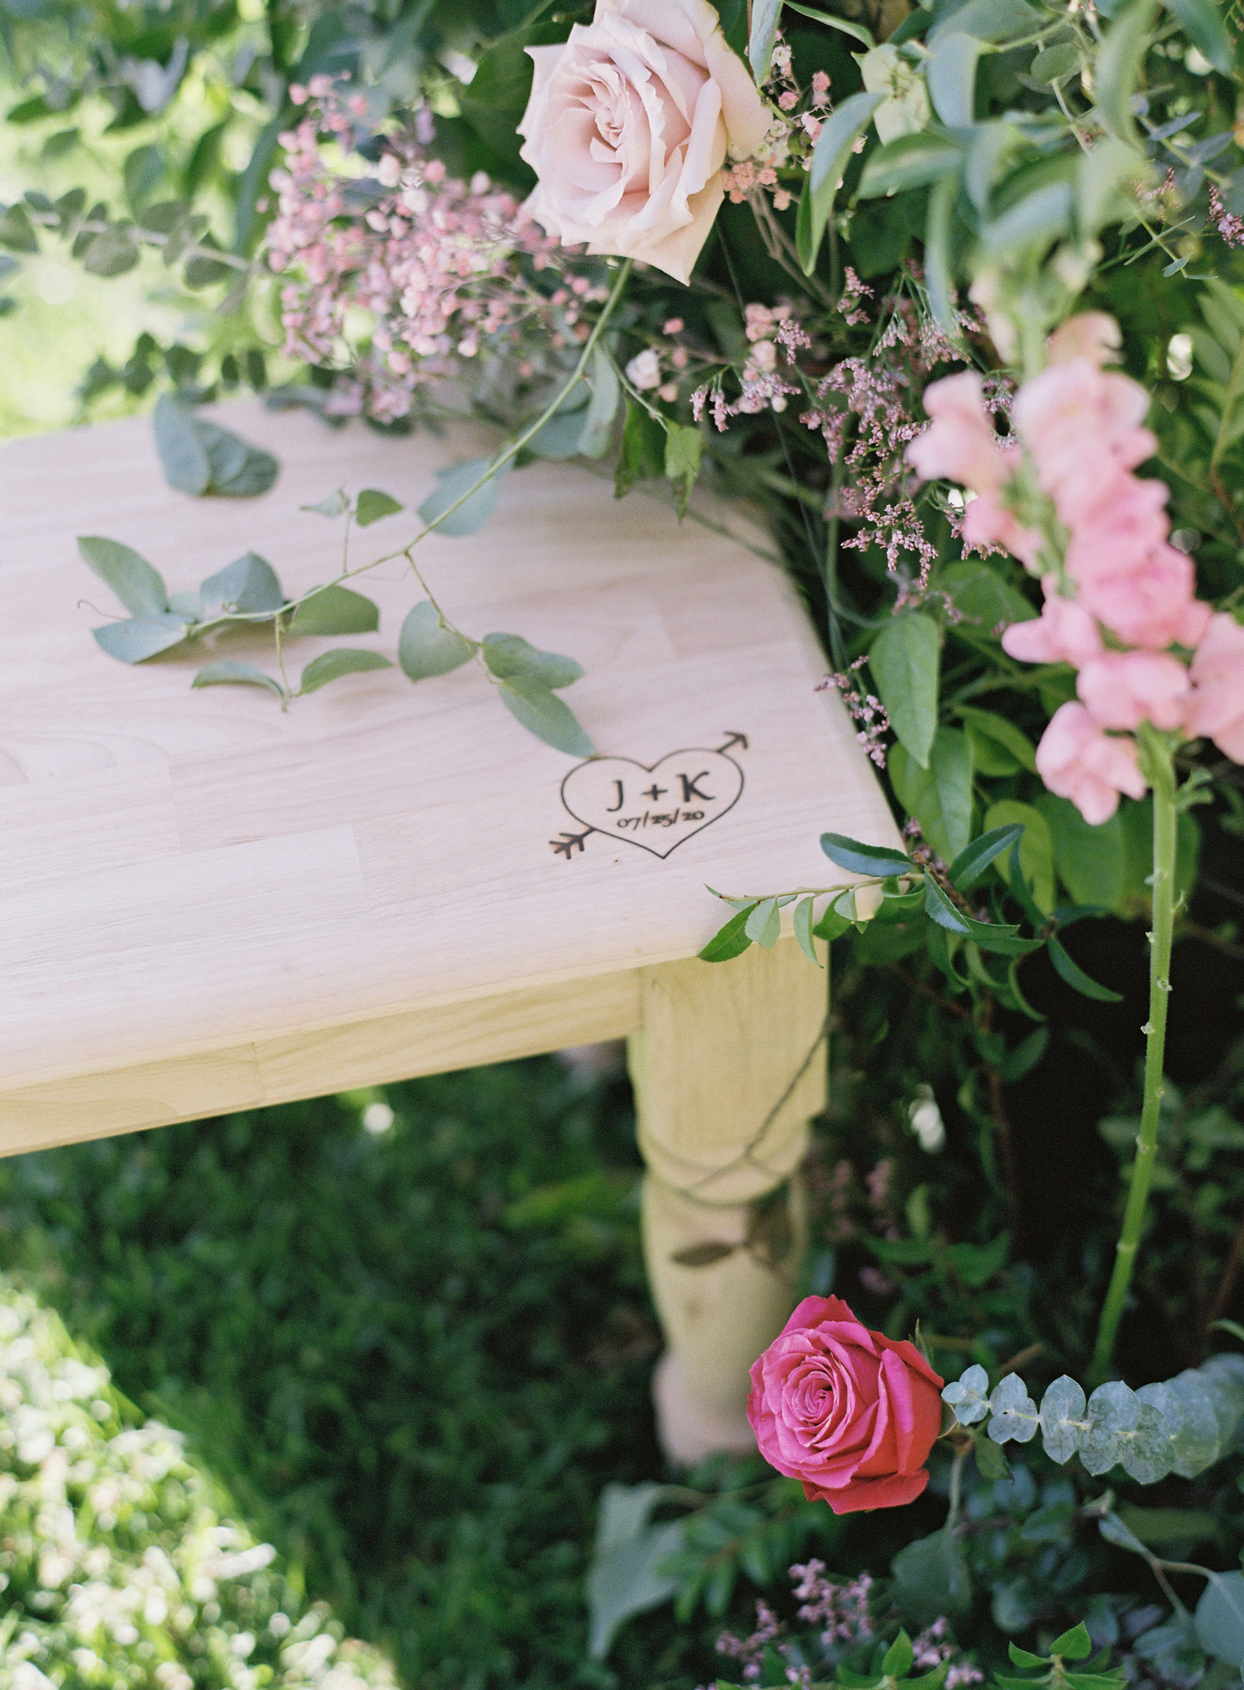 J+K engraved on wooden wedding bench